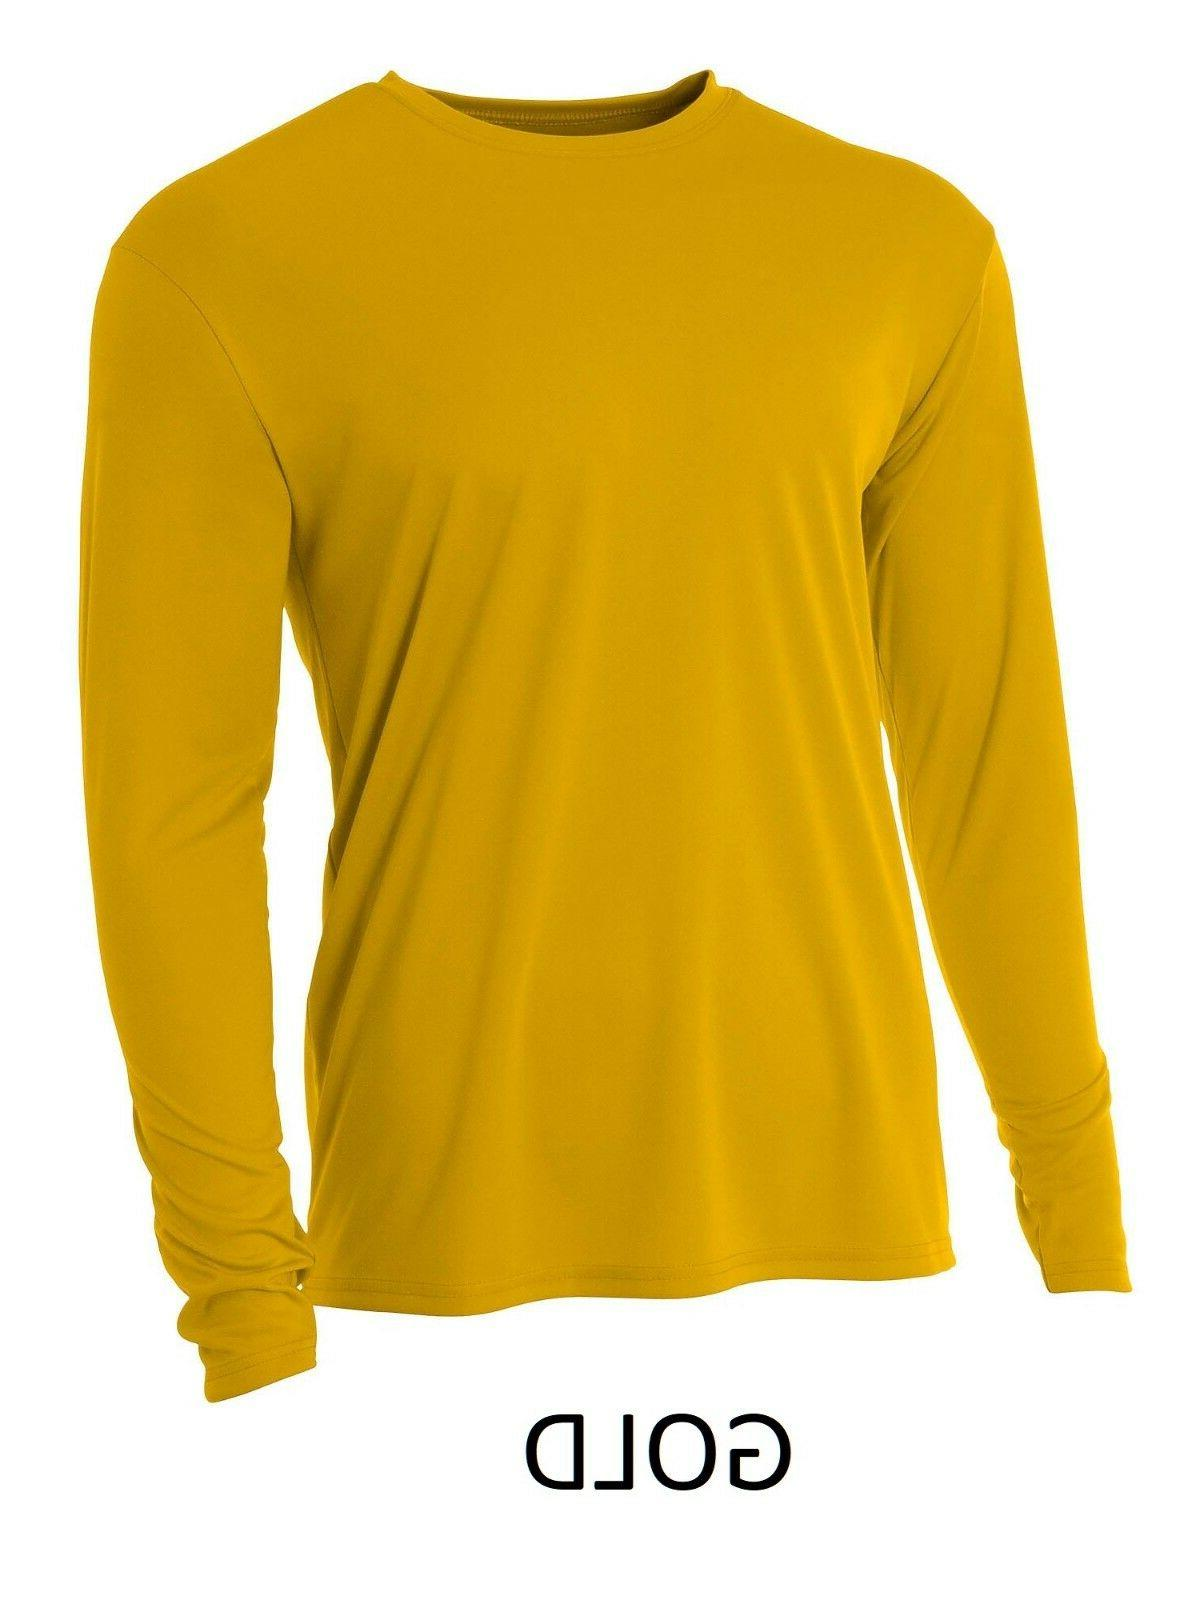 A4 Sleeve Tee UPF 30+ UV Protection